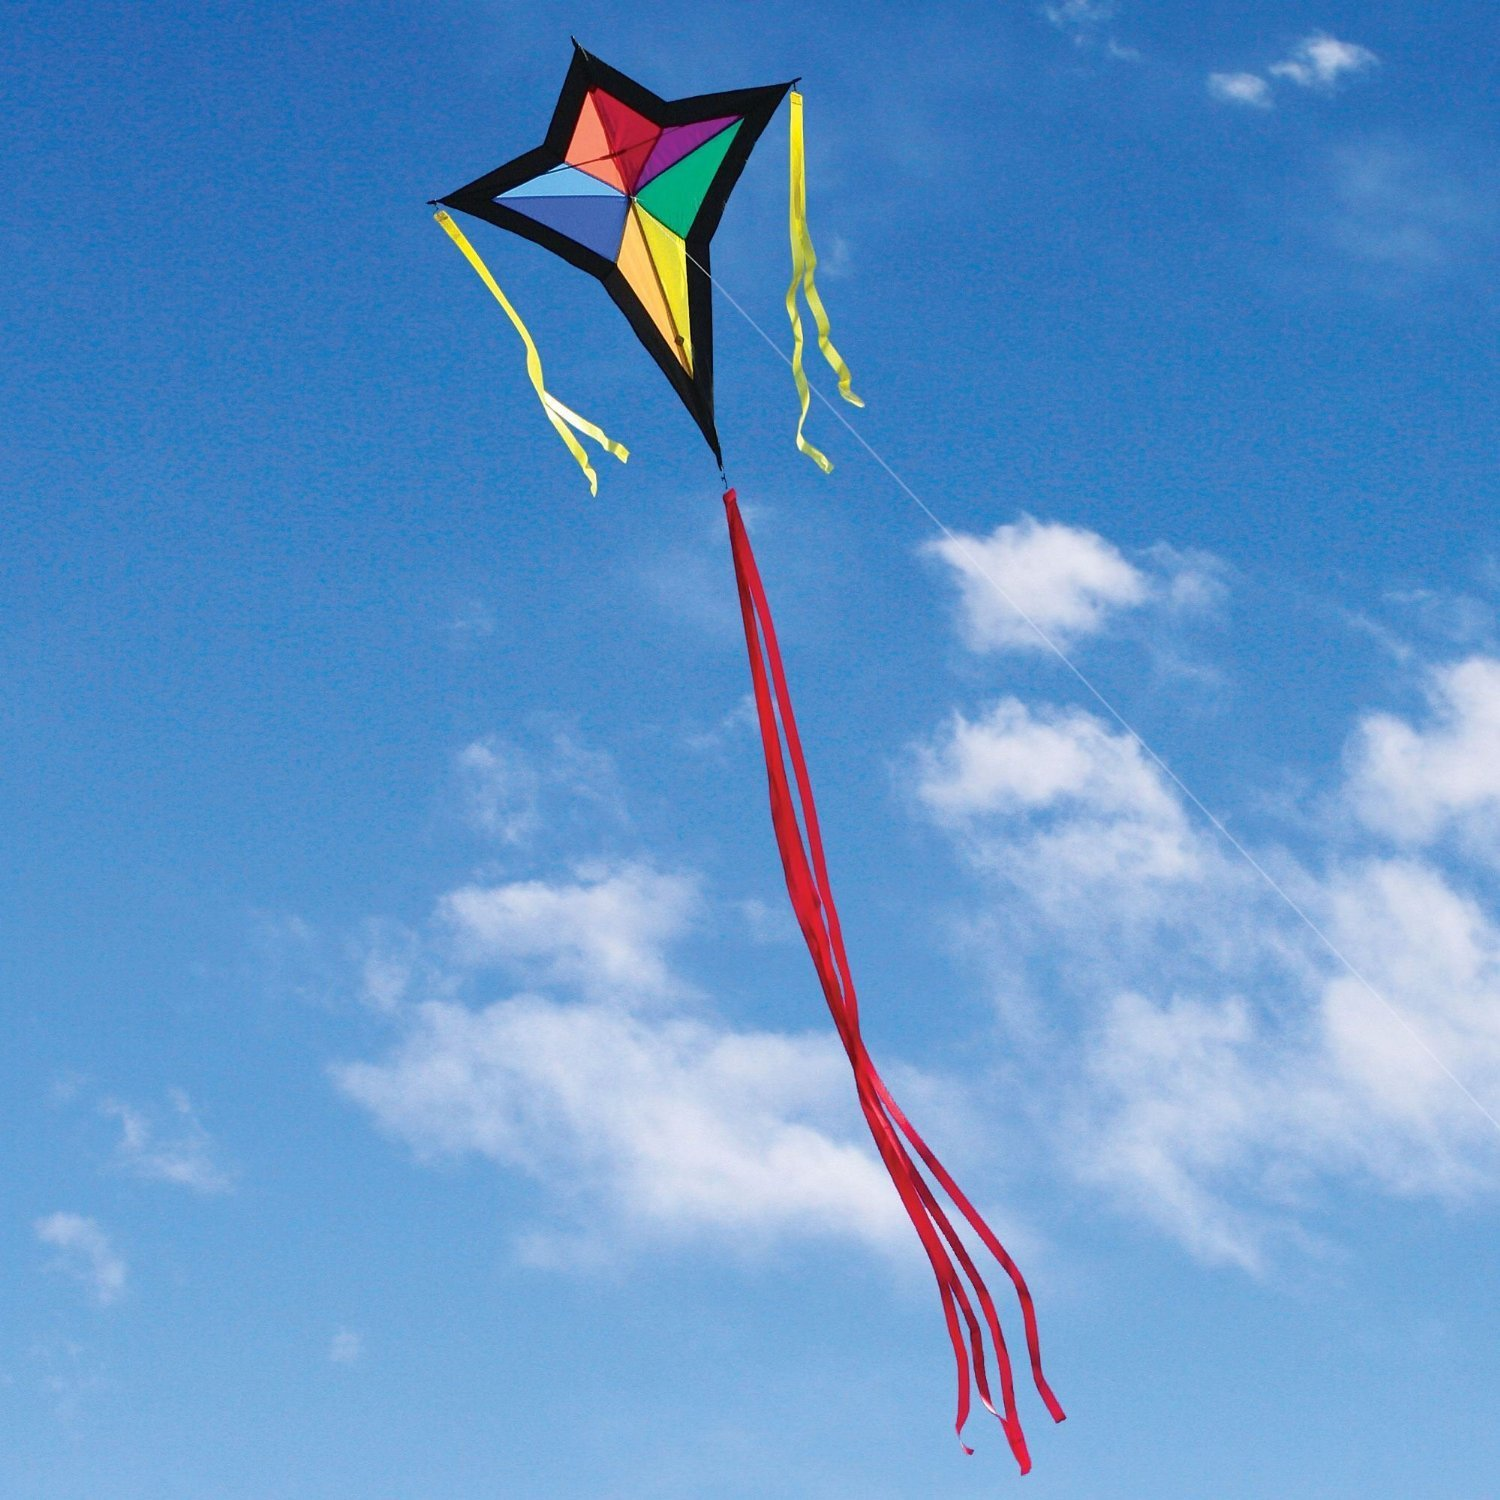 san premier travel designs orbit kite diamond kites